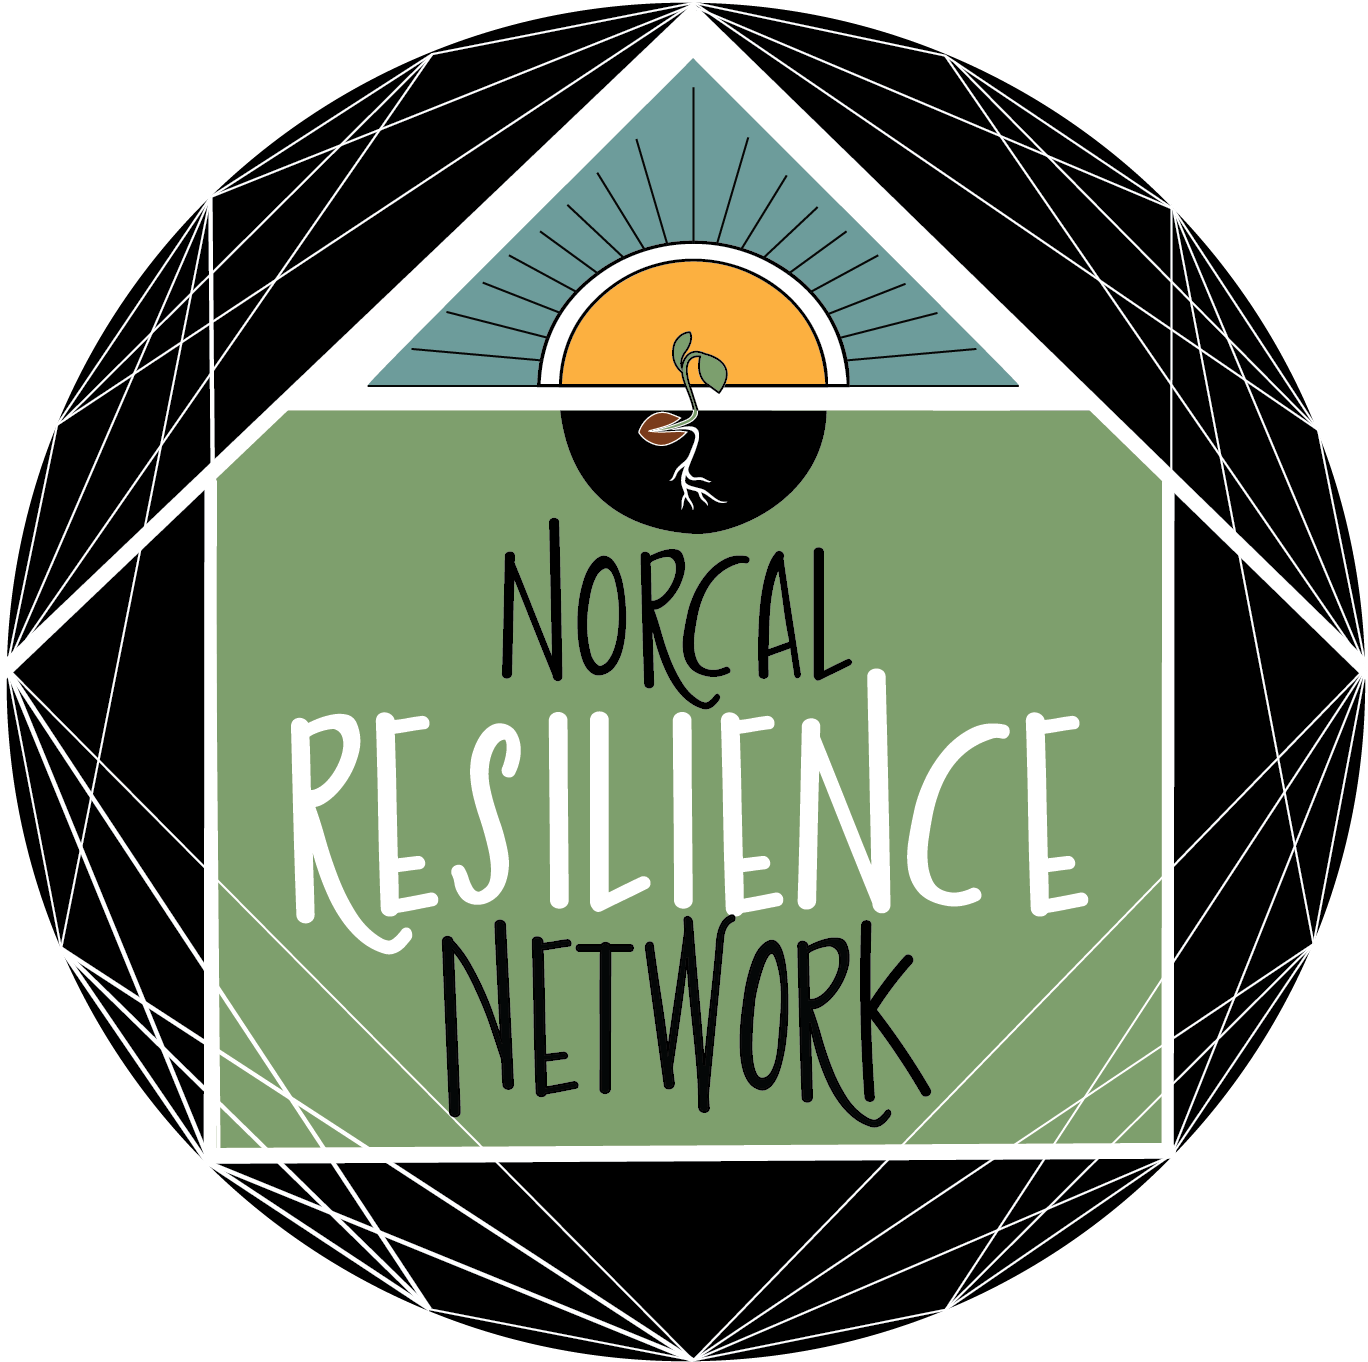 NorCal Resilience Network